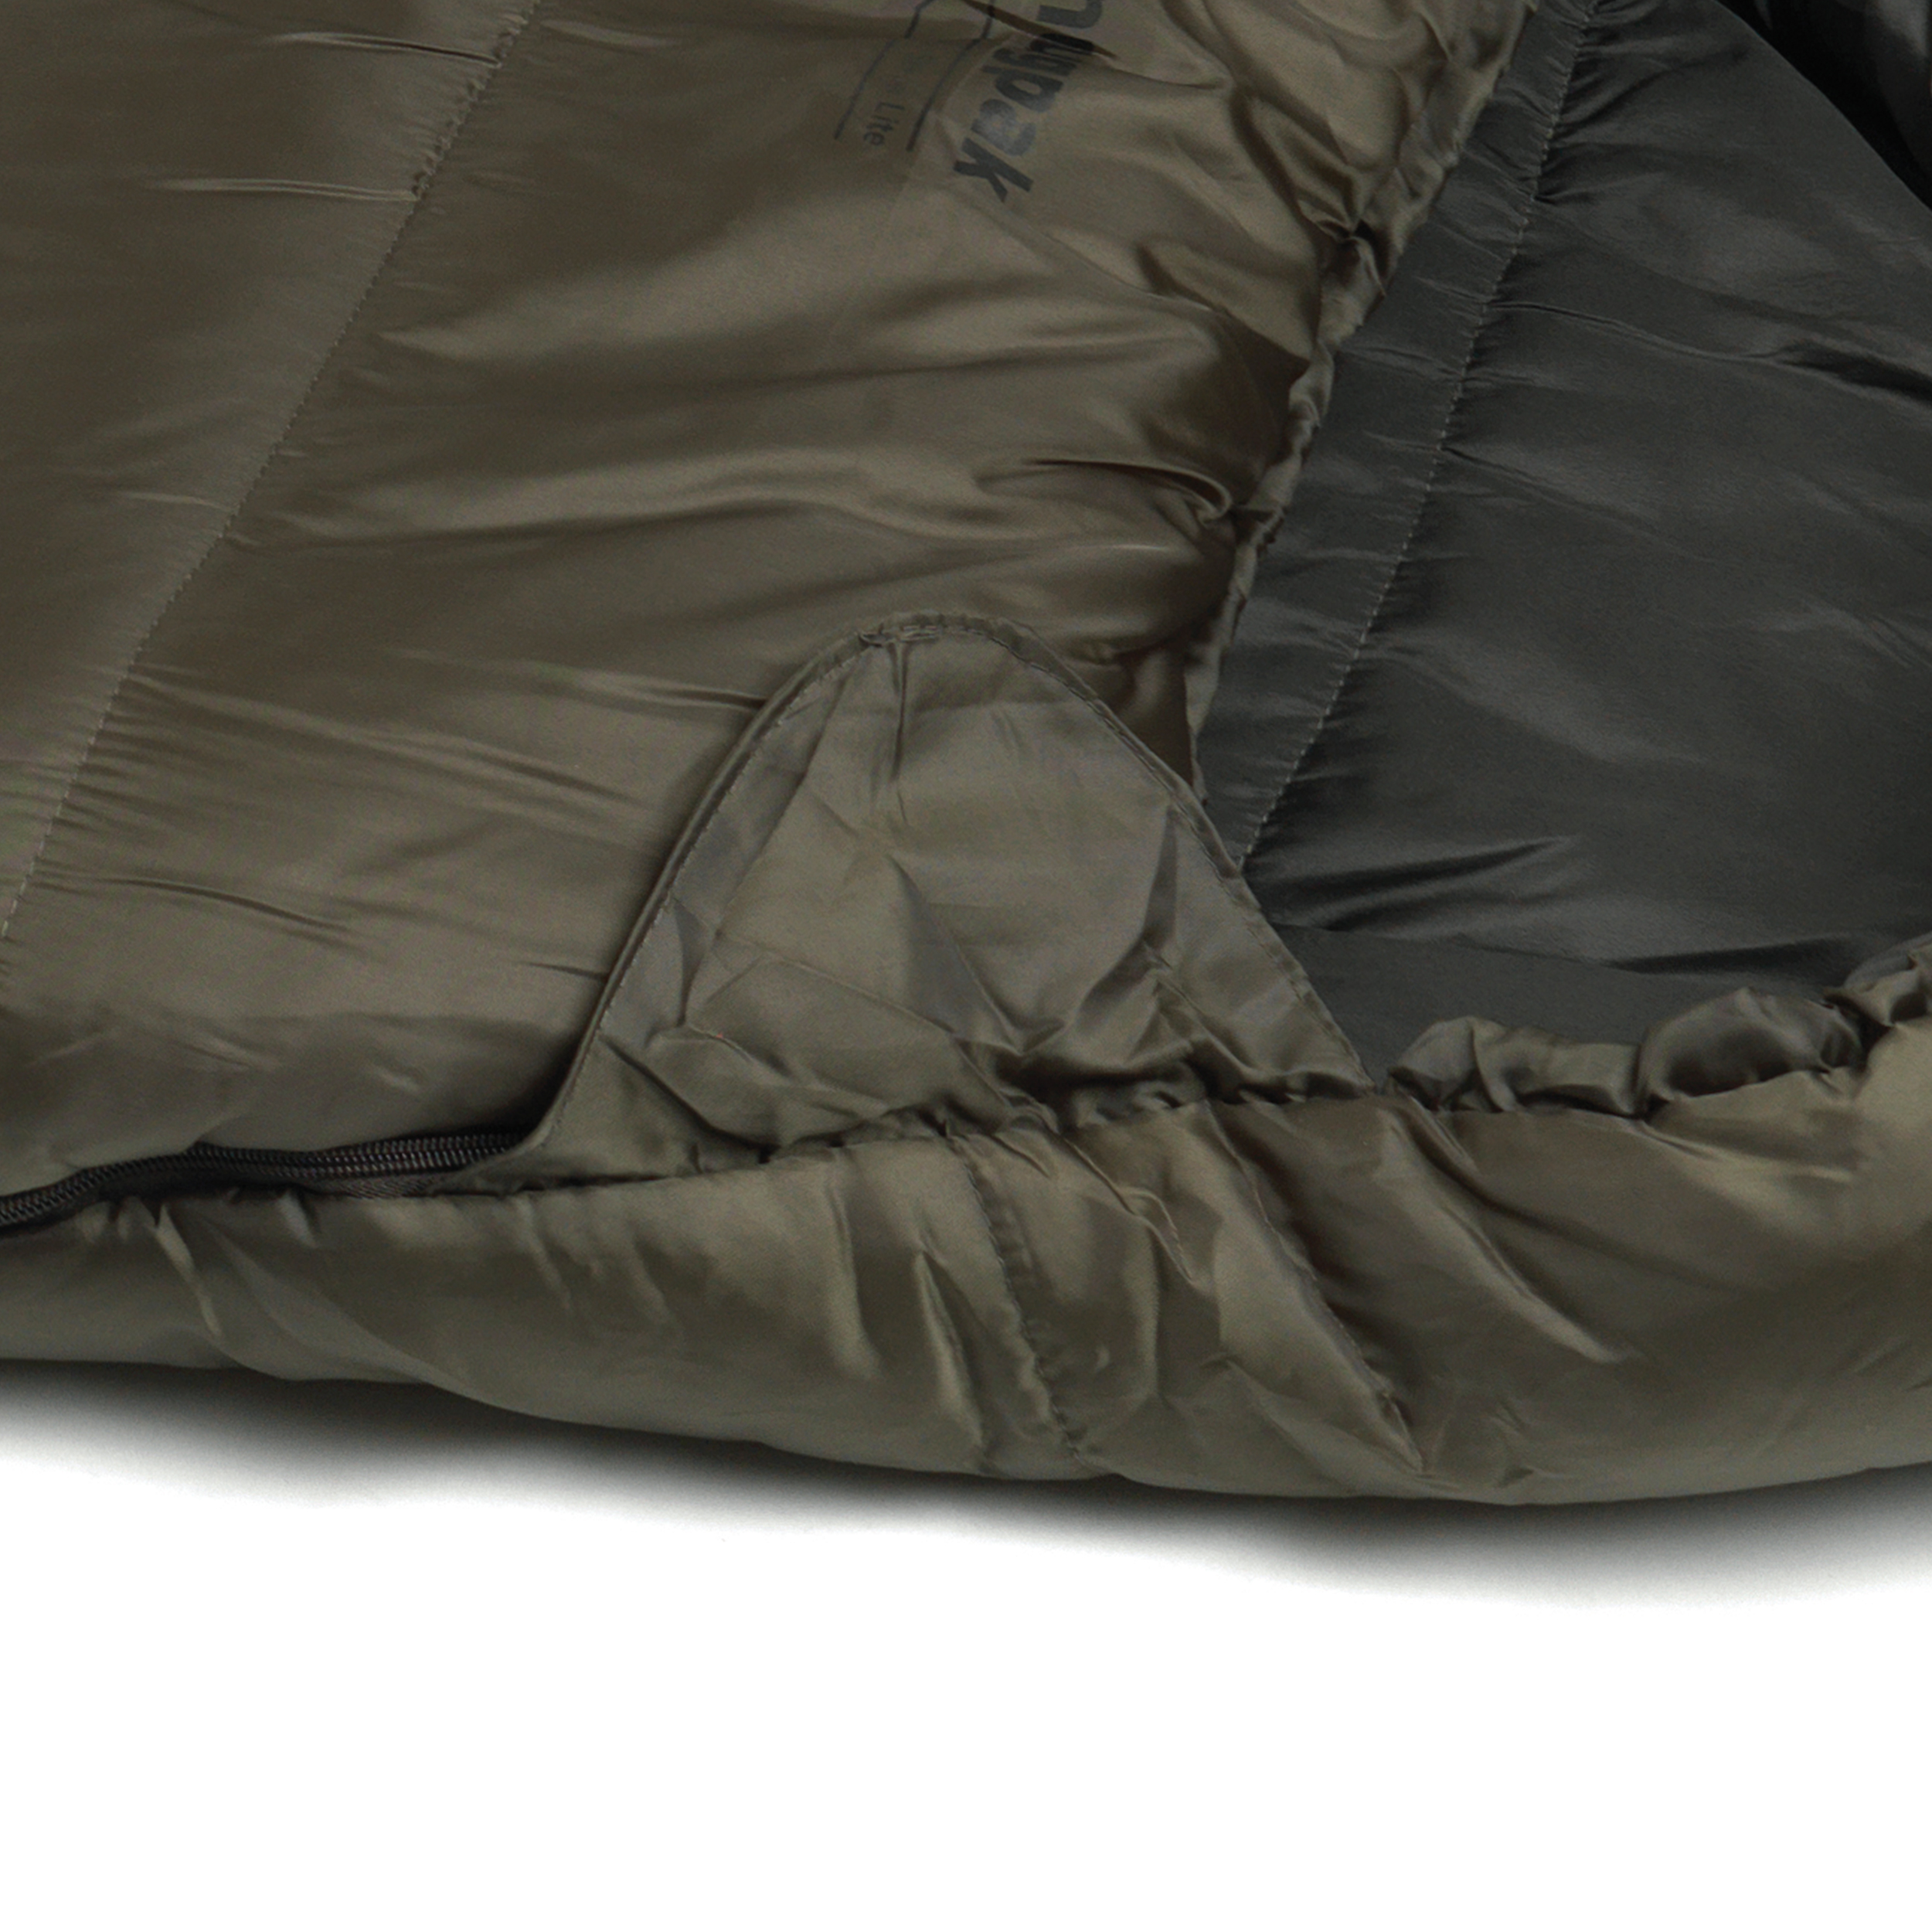 Snugpak-Basecamp-Ops-Sleeper-Expedition-Sleeping-Bag-4-Season-Insulated-Olive thumbnail 4